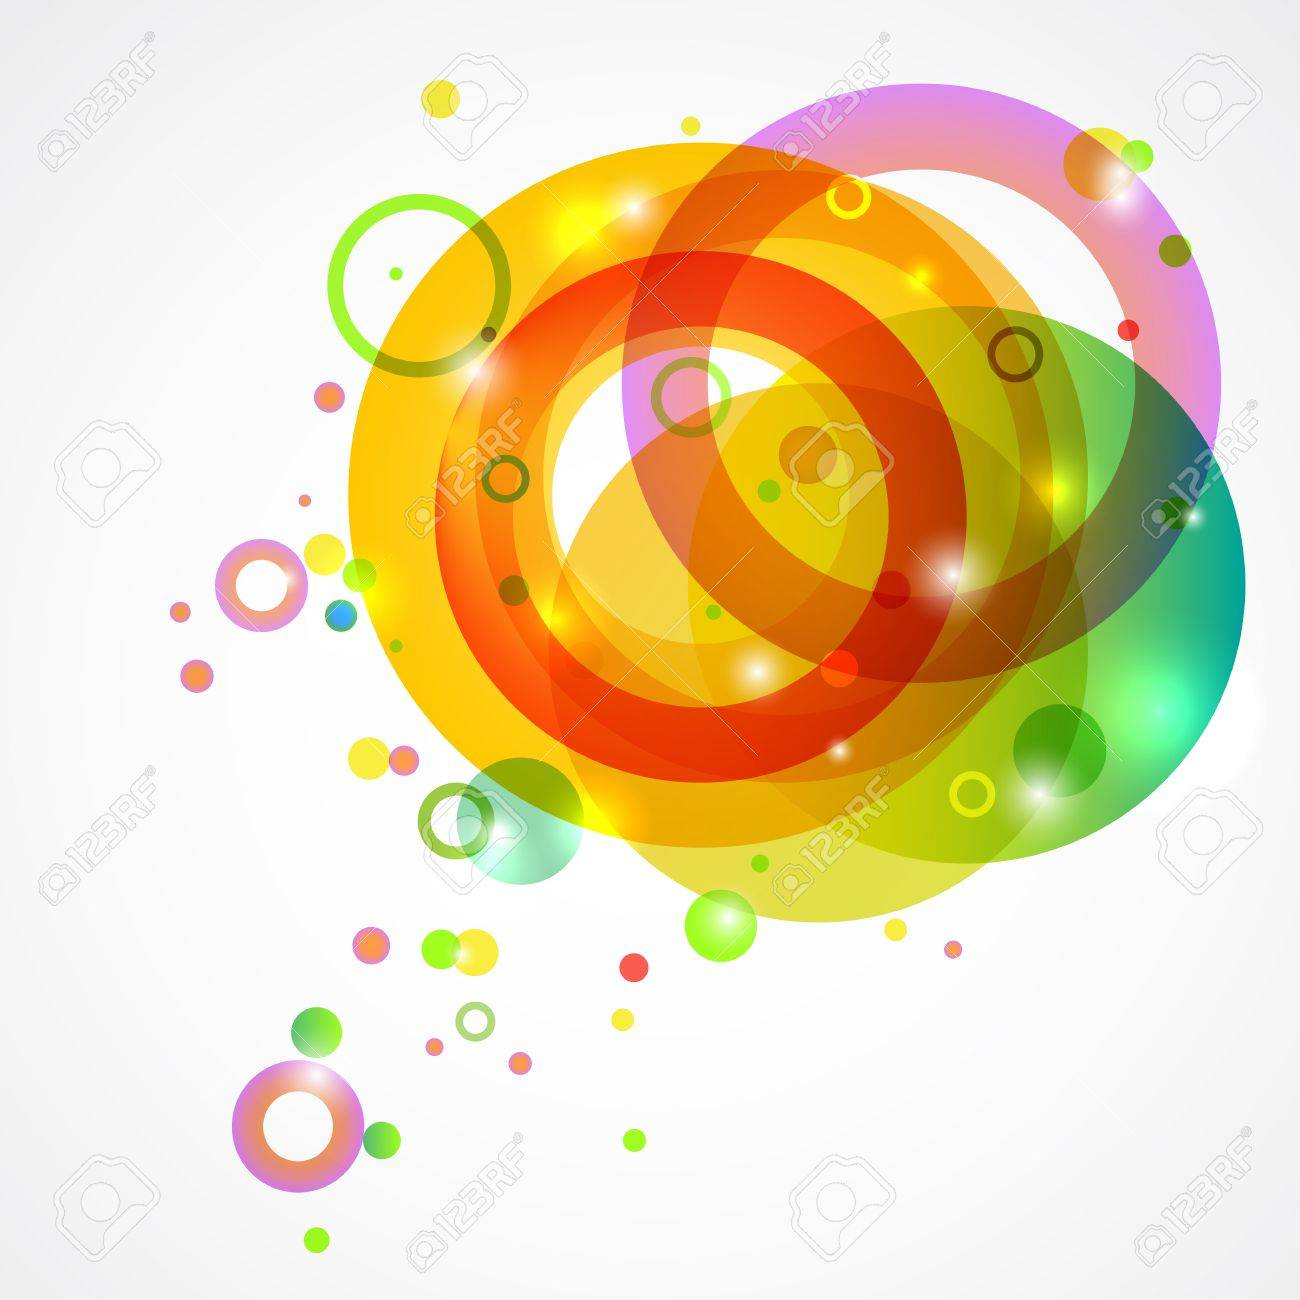 Bright colored circles on a white background Stock Vector - 18544930